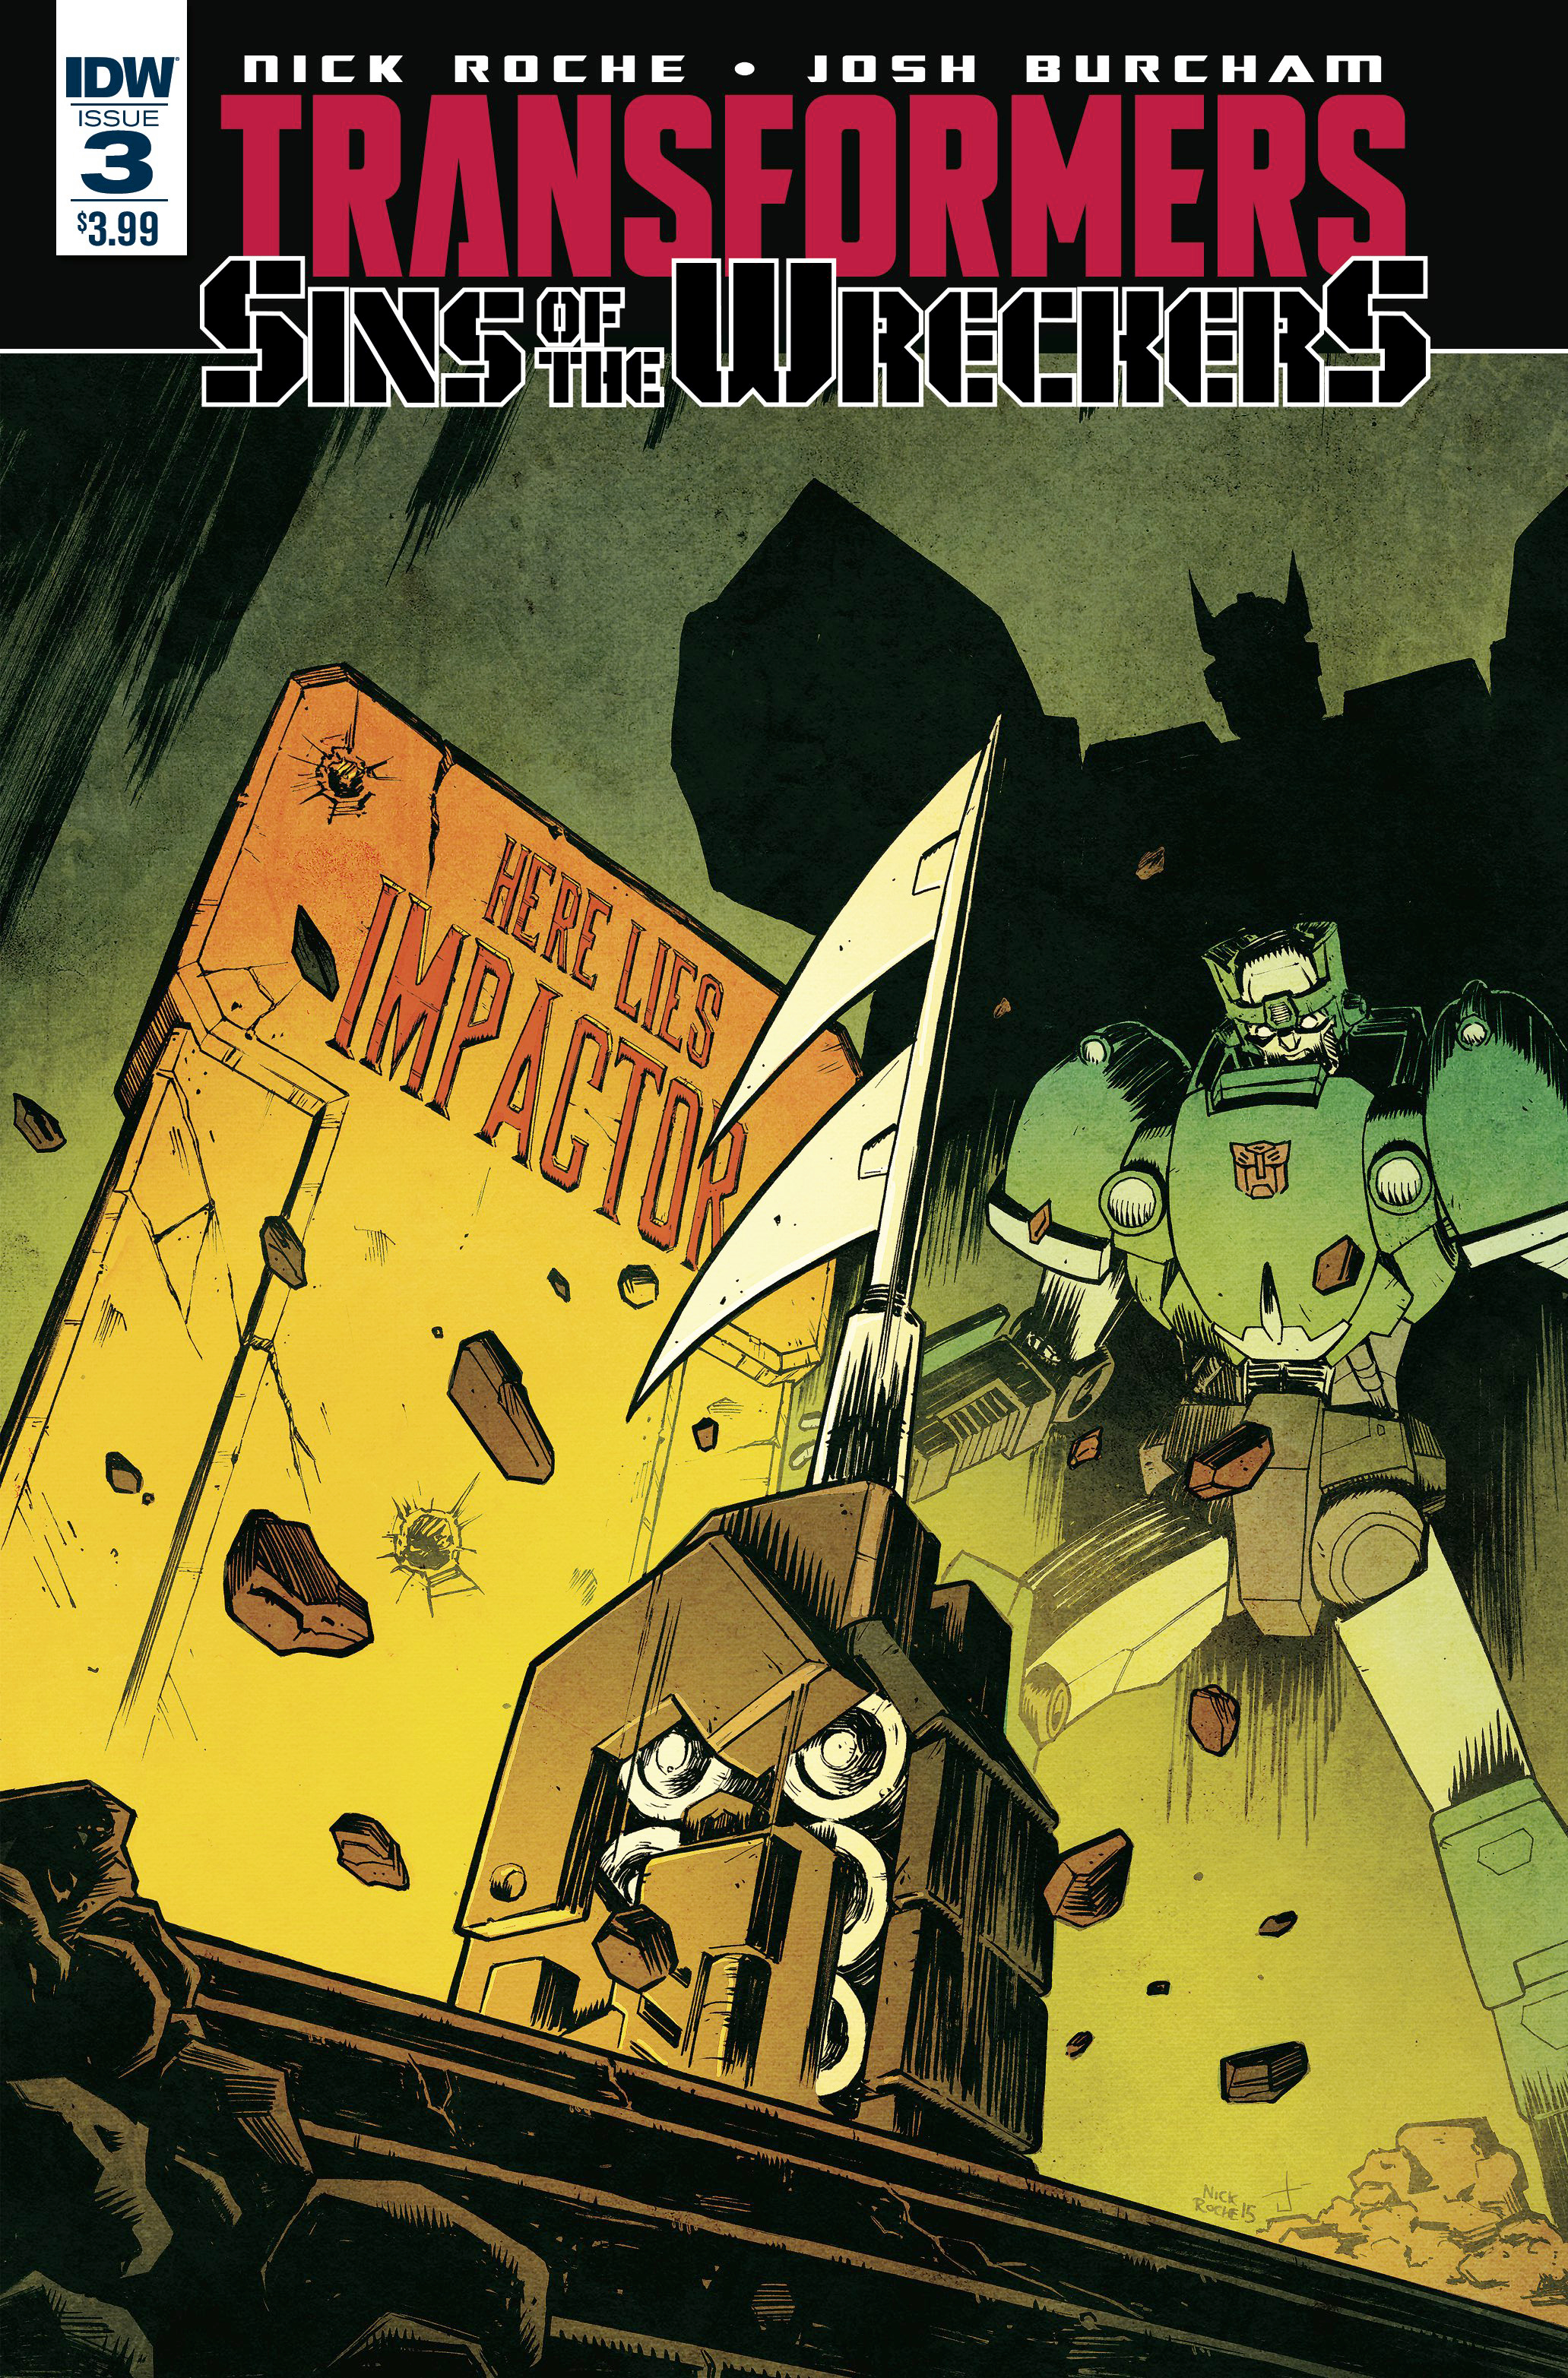 TRANSFORMERS SINS OF WRECKERS #3